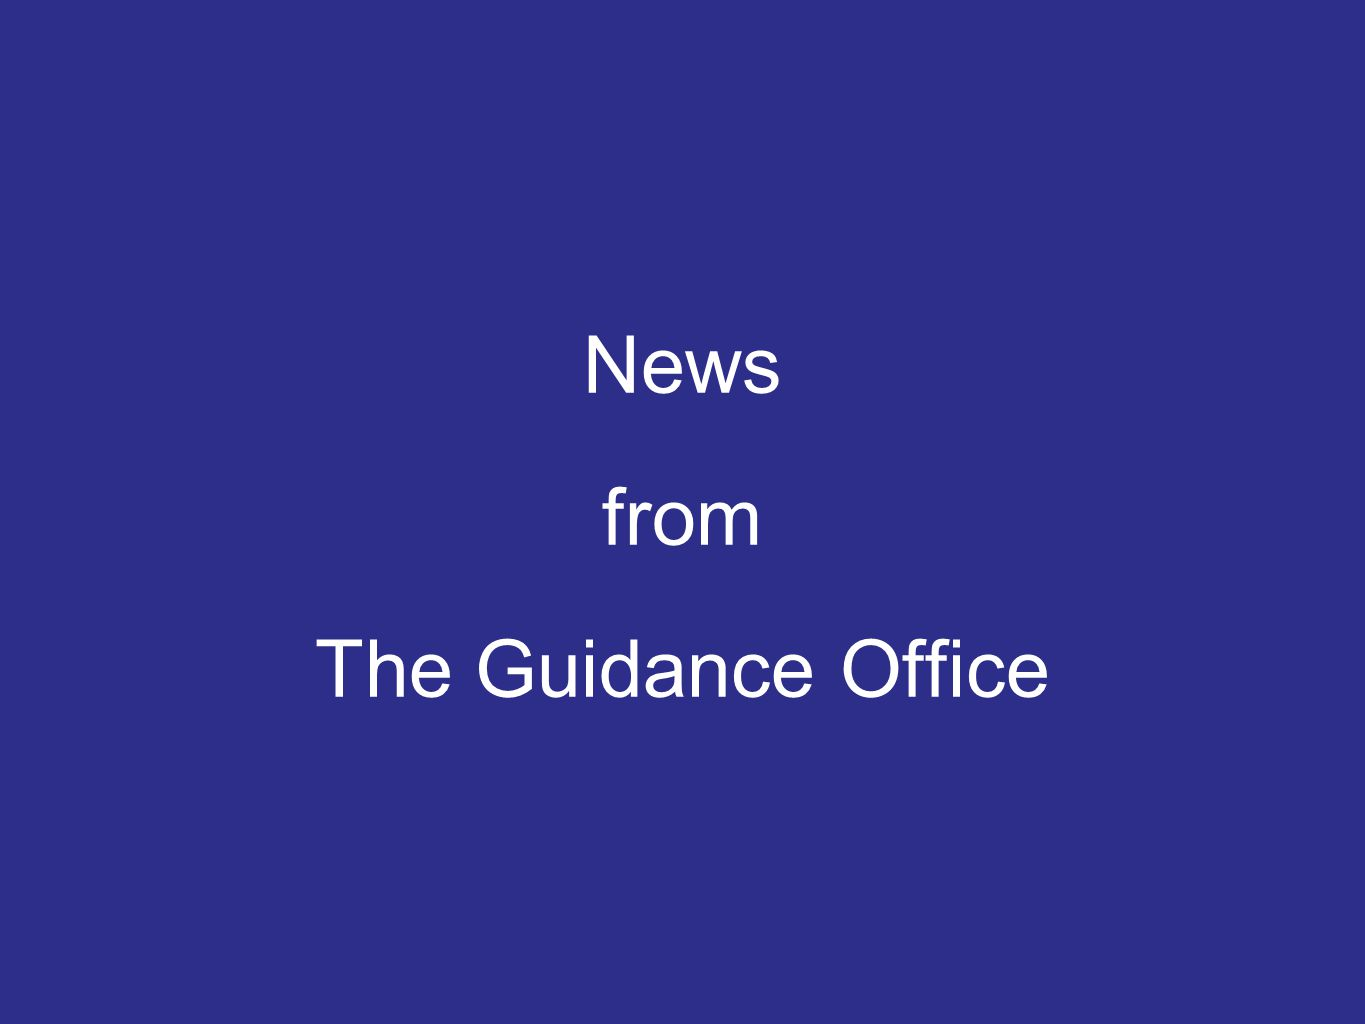 News from The Guidance Office